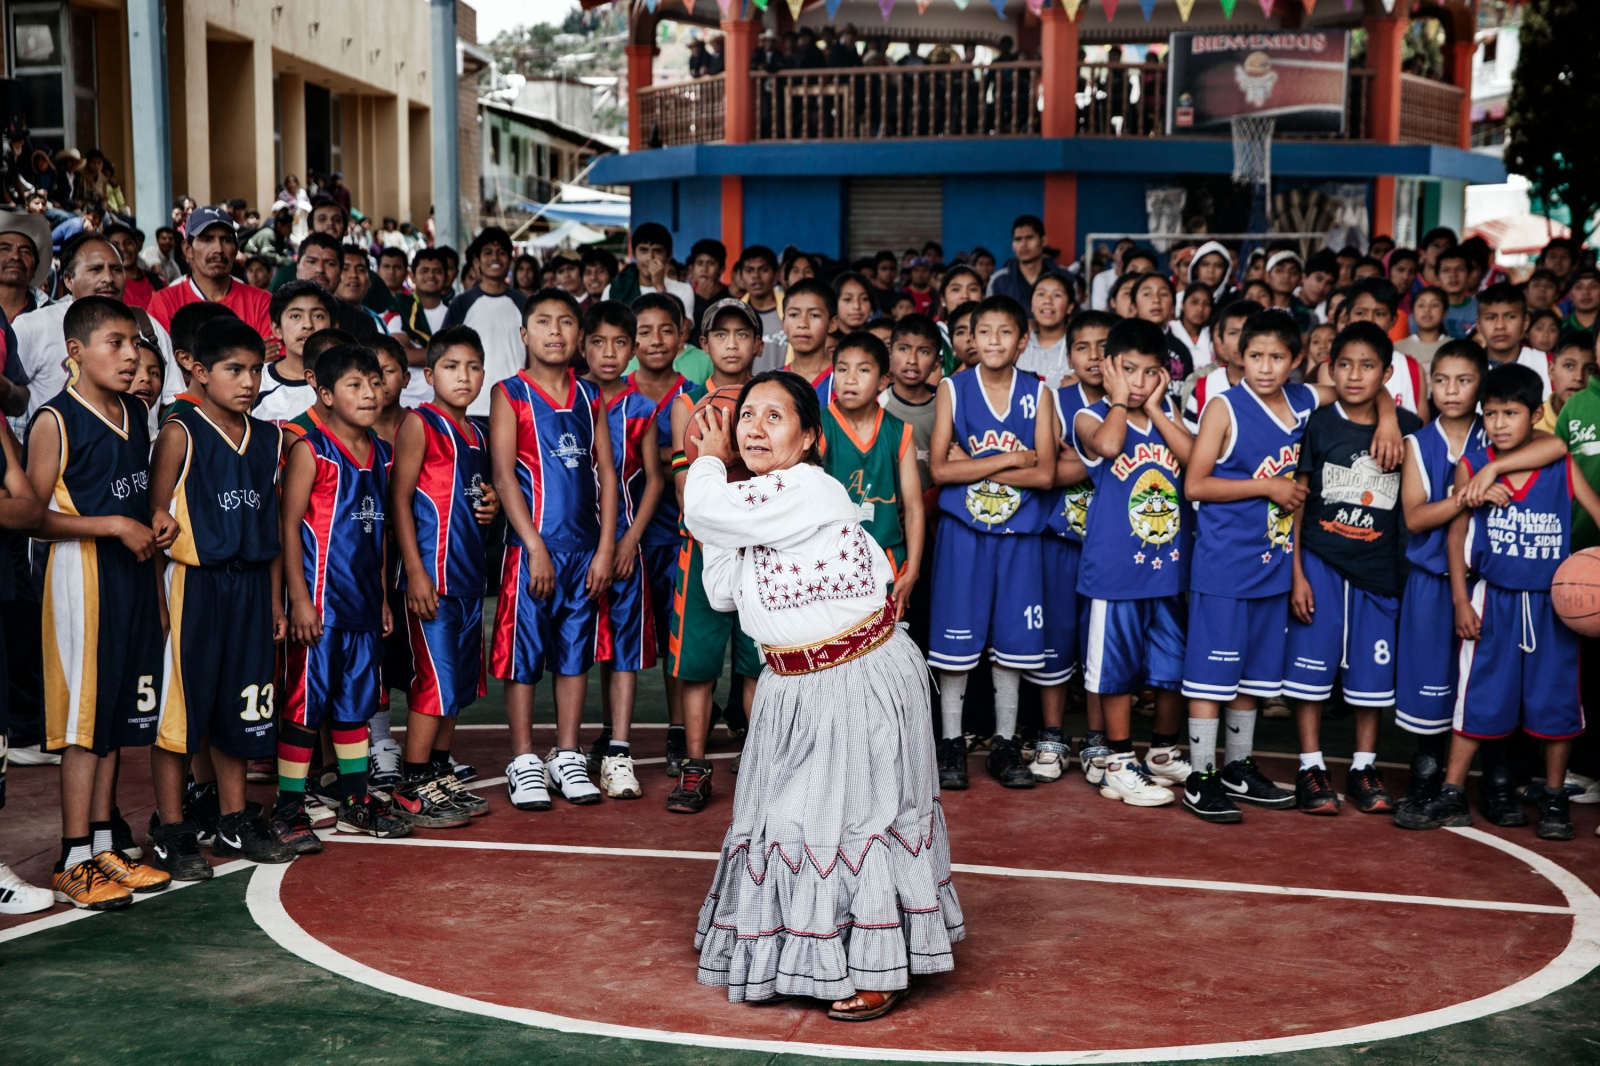 SANTA MARIA TLAHUITOLTEPEC, MAY 19, 2012. Tlahuitotepec's first female mayor Sofia Robles, takes the opening shot at the basketball tournament.